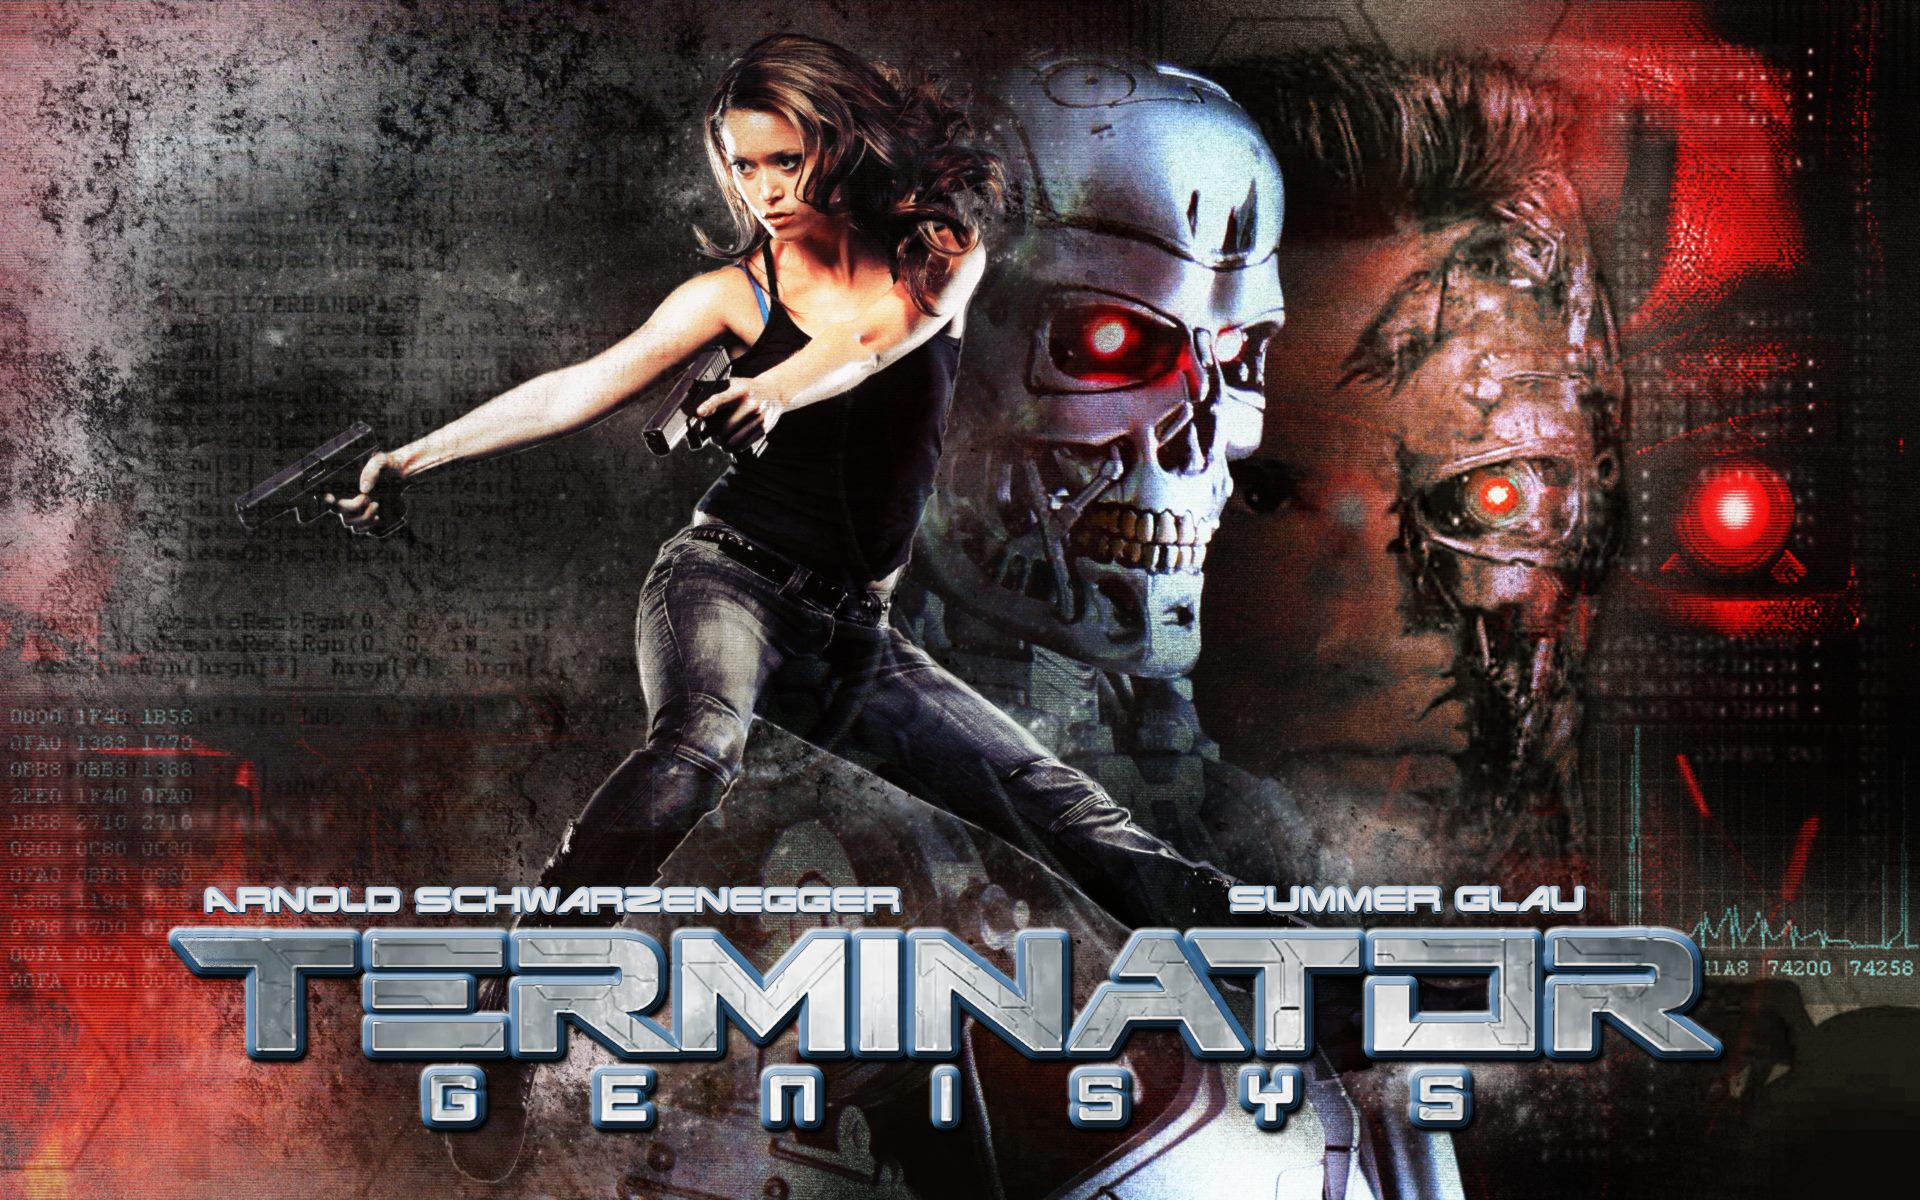 Terminator genisys(mod) | unlimited all | download | proof with hd.